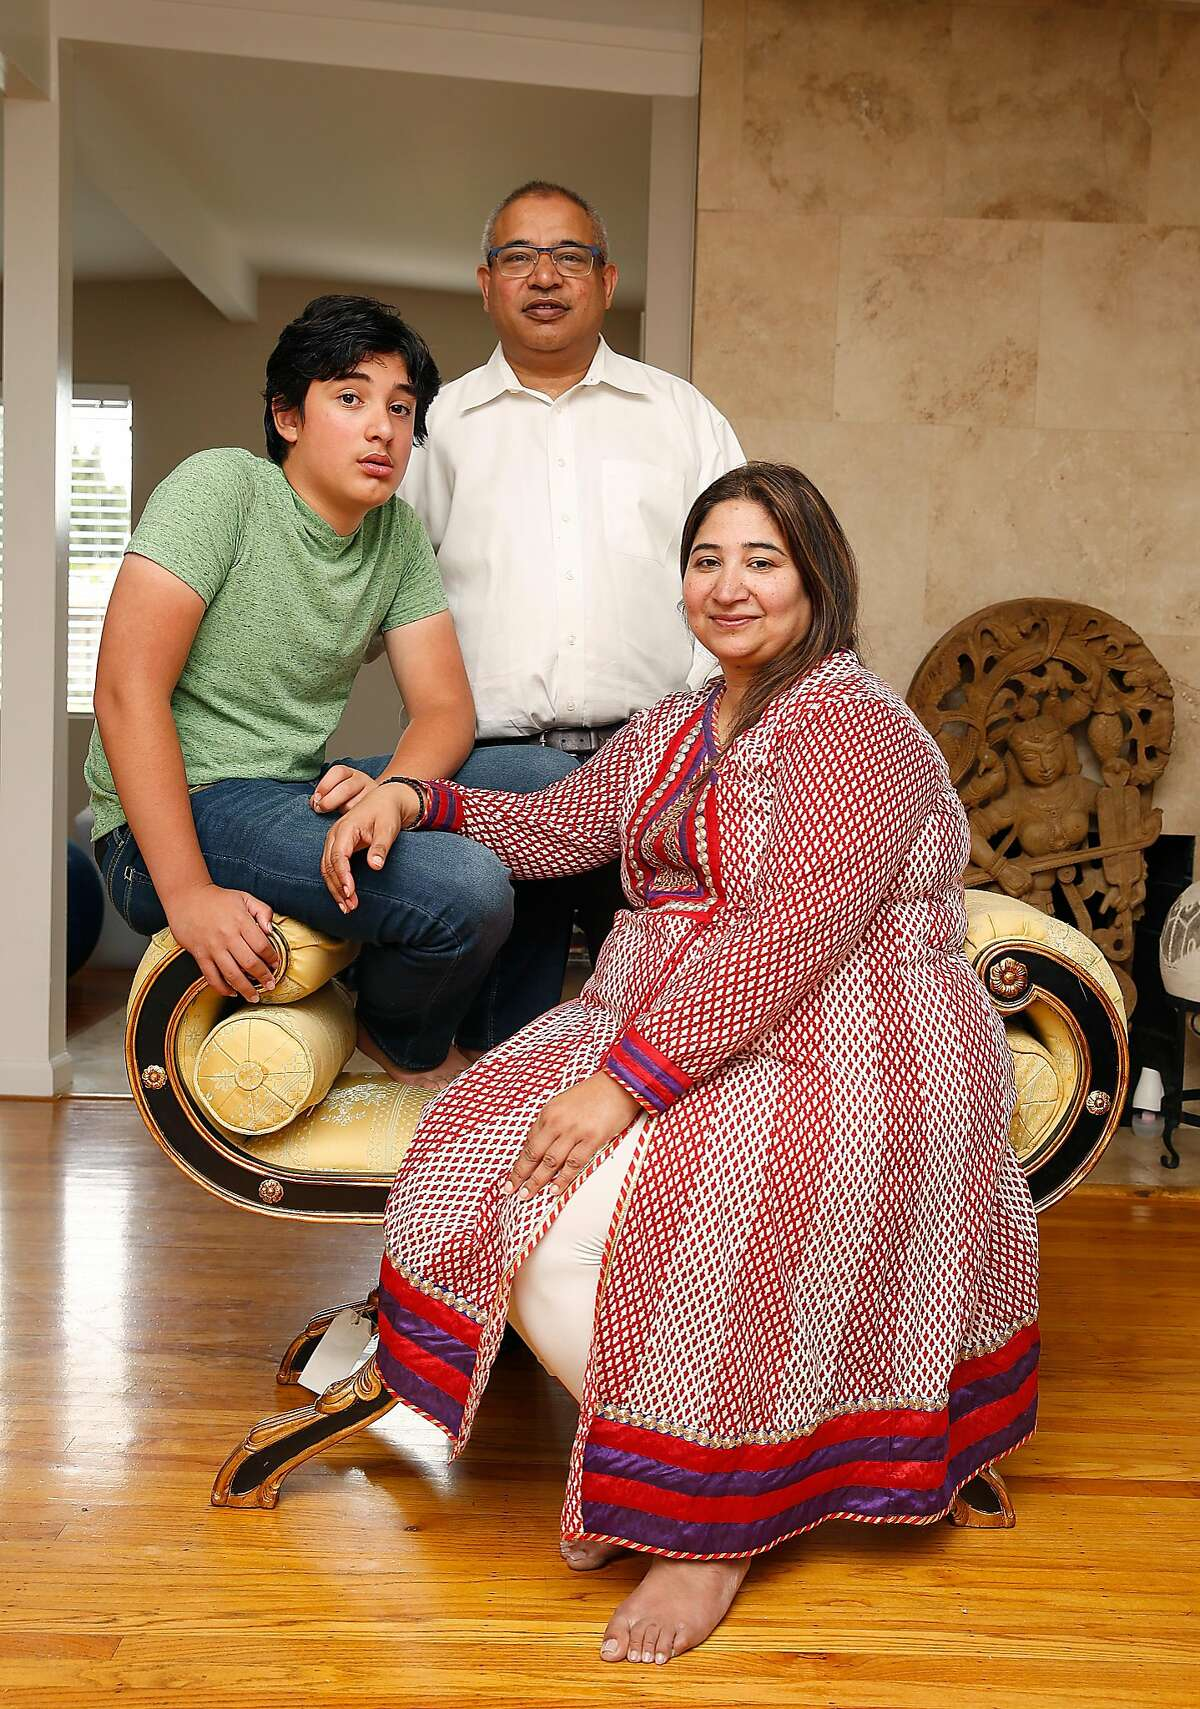 Ayush Thirumala (left), 13, with his dad Srinidhi Thirumala (white shirt), and mom Sowmya Rangaswamy (front) in their new home on Friday, August 3, 2017, in Mountain View, Calif.